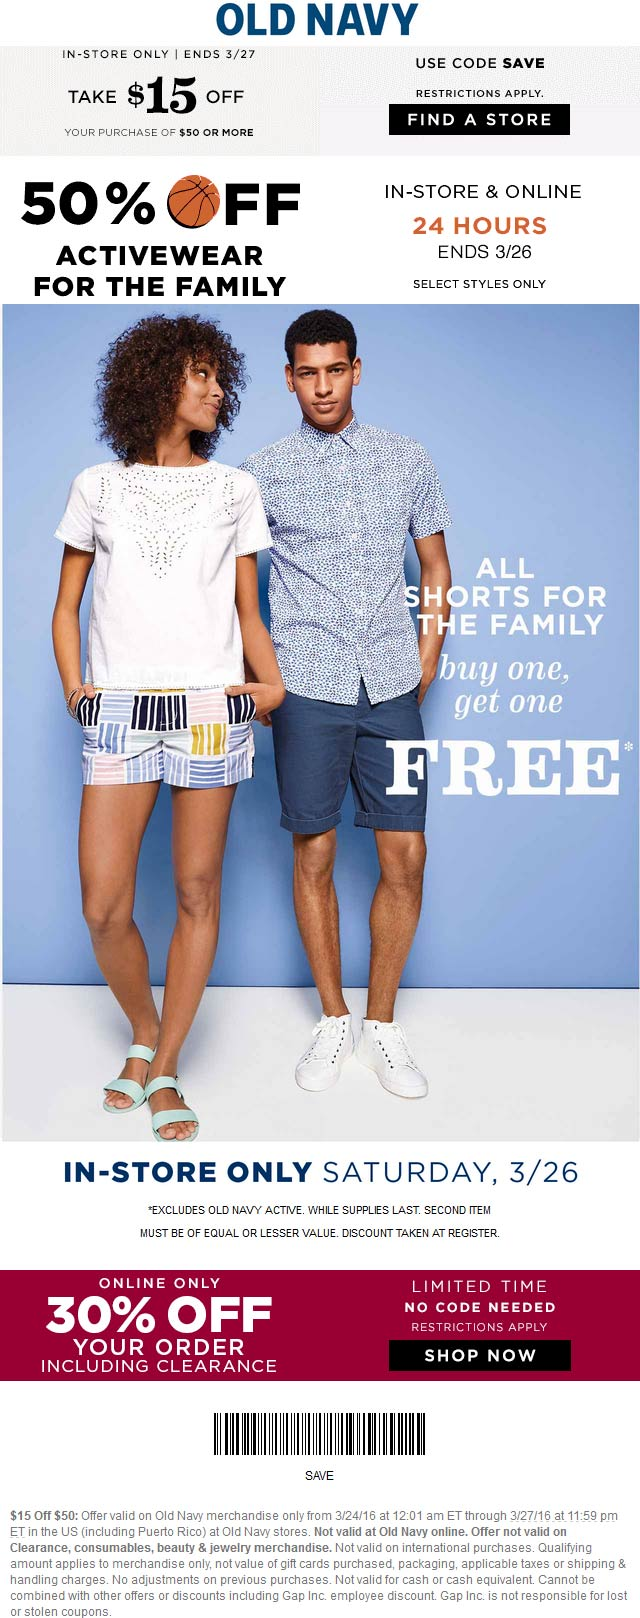 Old Navy Coupon May 2017 $15 off $50 at Old Navy, or 30% automatically online